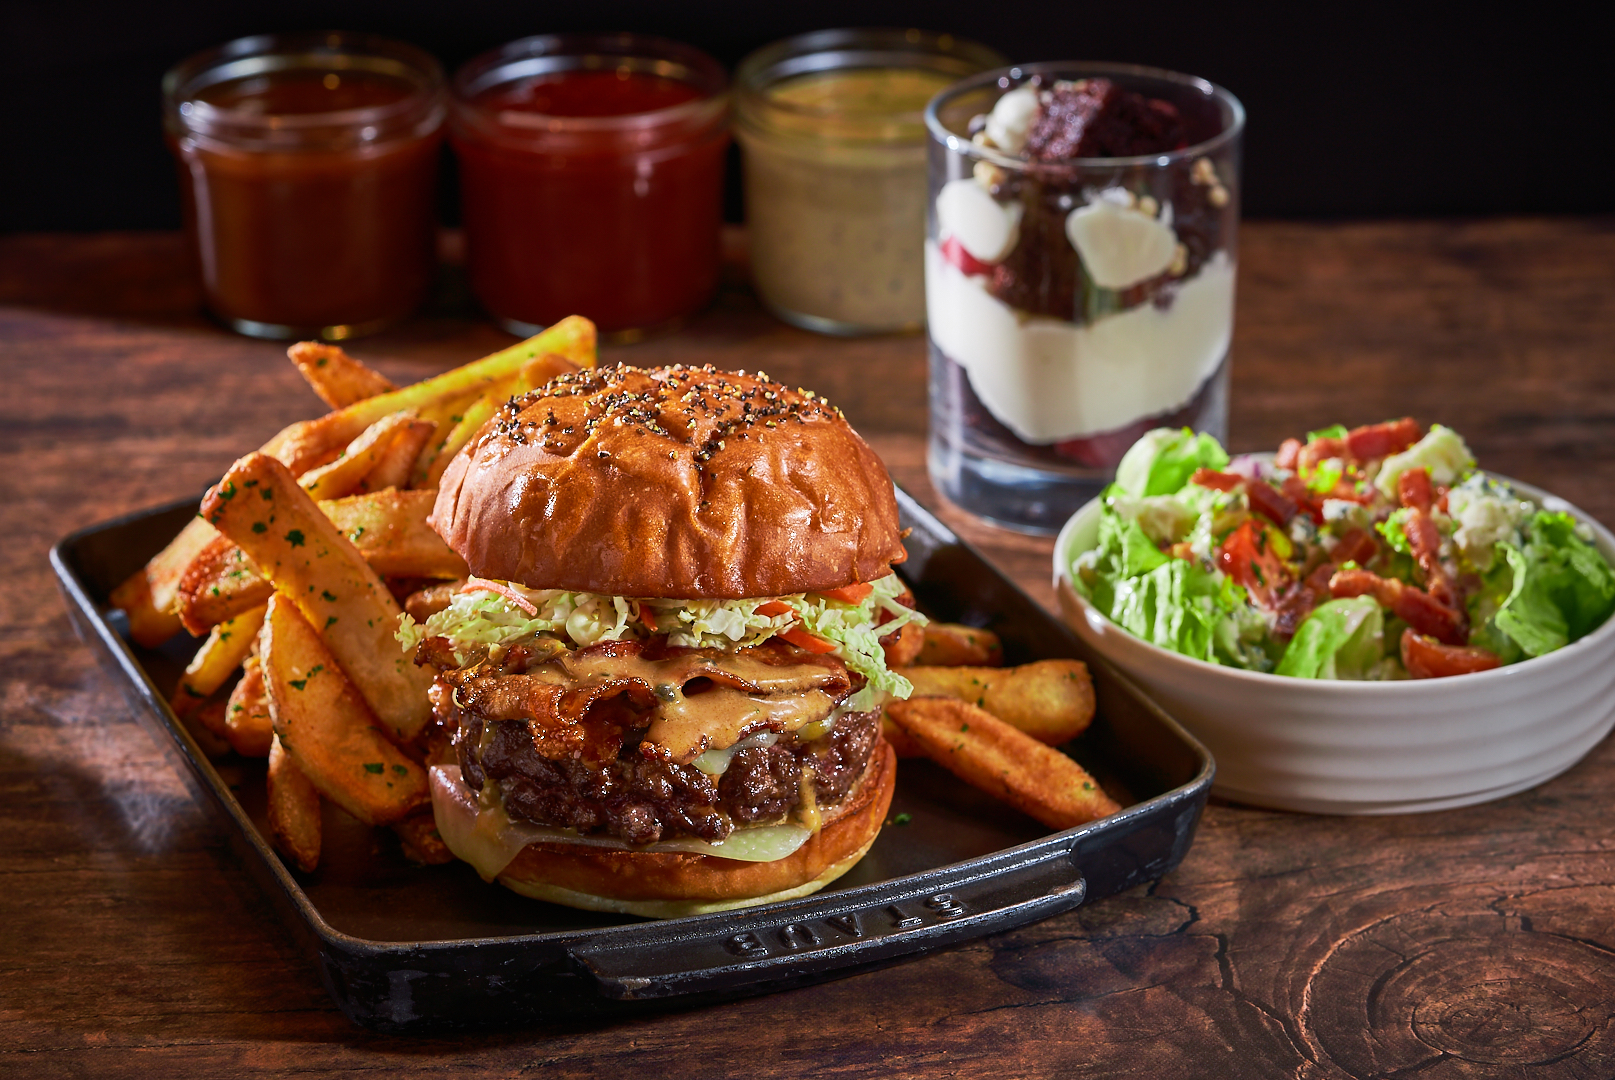 Game Day Food Specials for Your At-Home Super Bowl Watch